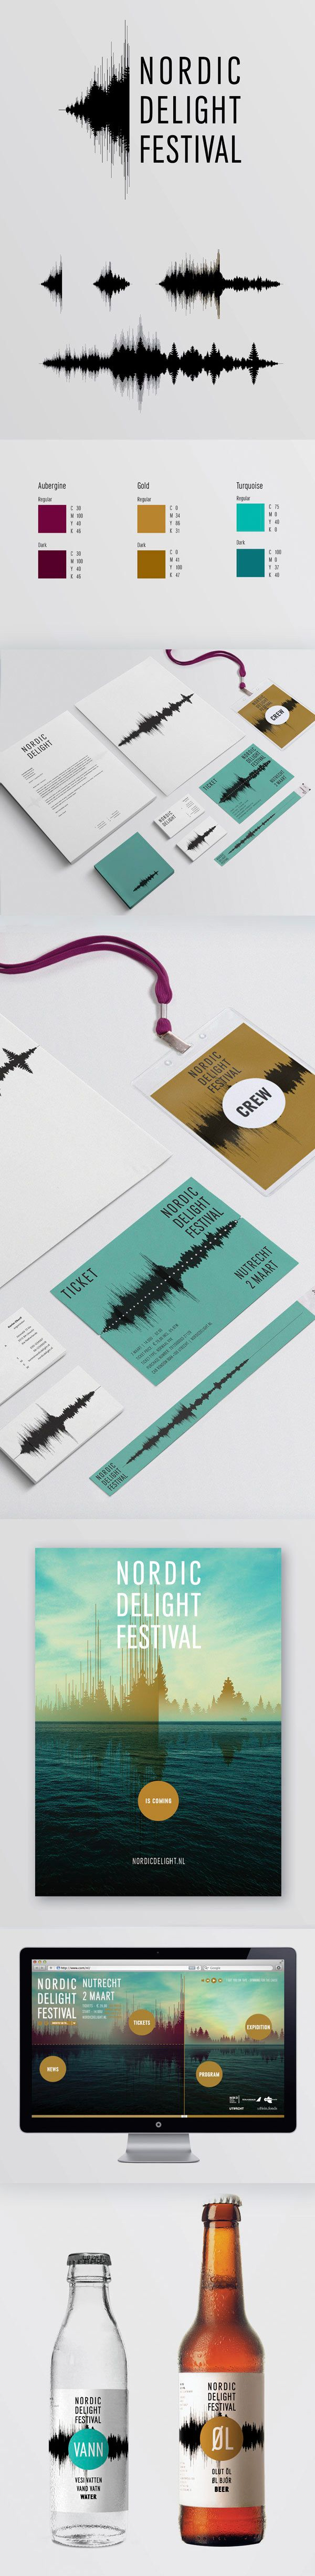 Nordic Delight Festival brand identity, by  CLEVER°FRANKE